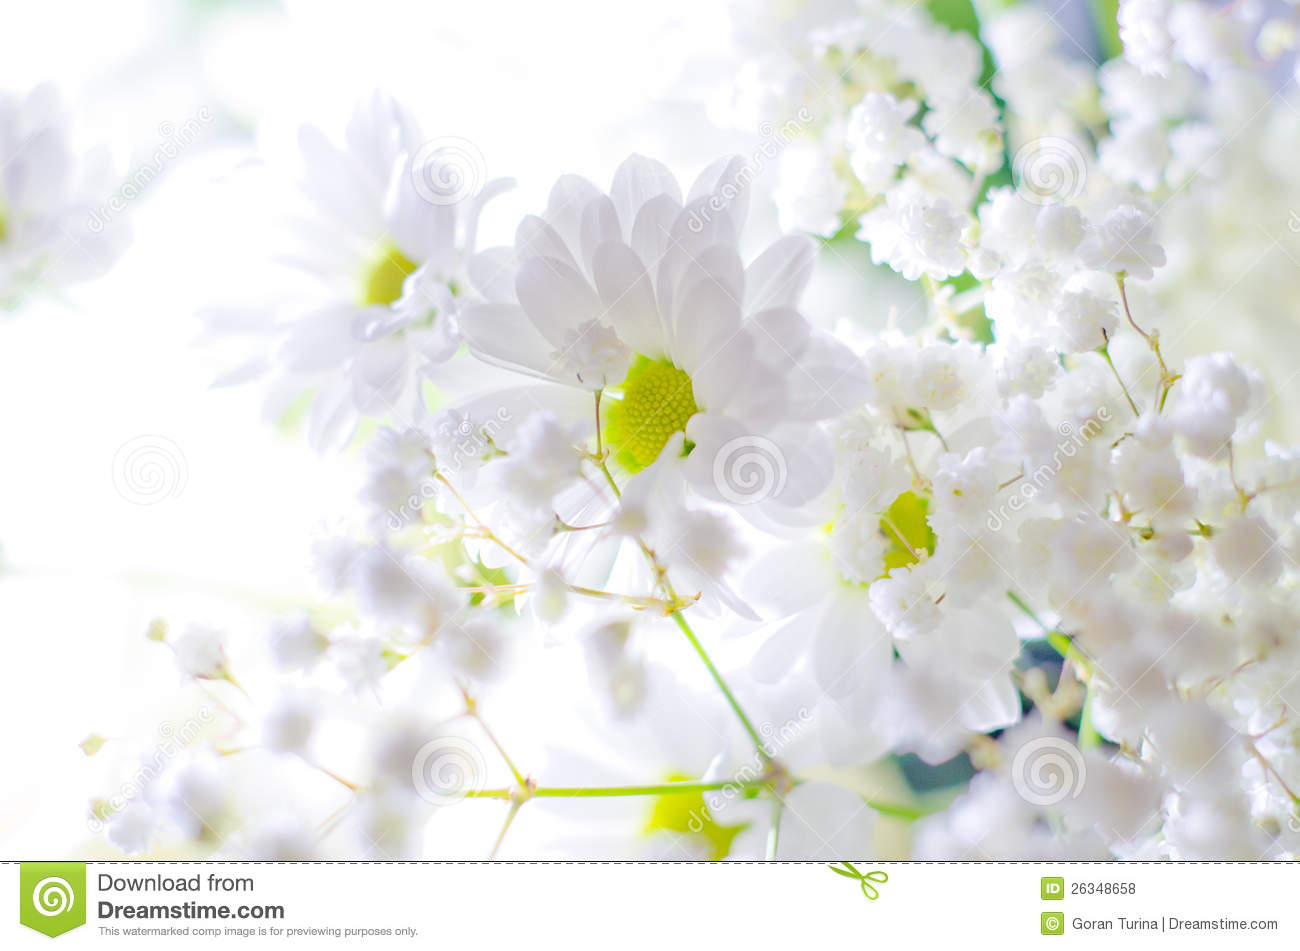 Free photos of white flowers png freeuse stock White Flowers Royalty Free Stock Photos - Image: 26348658 png freeuse stock